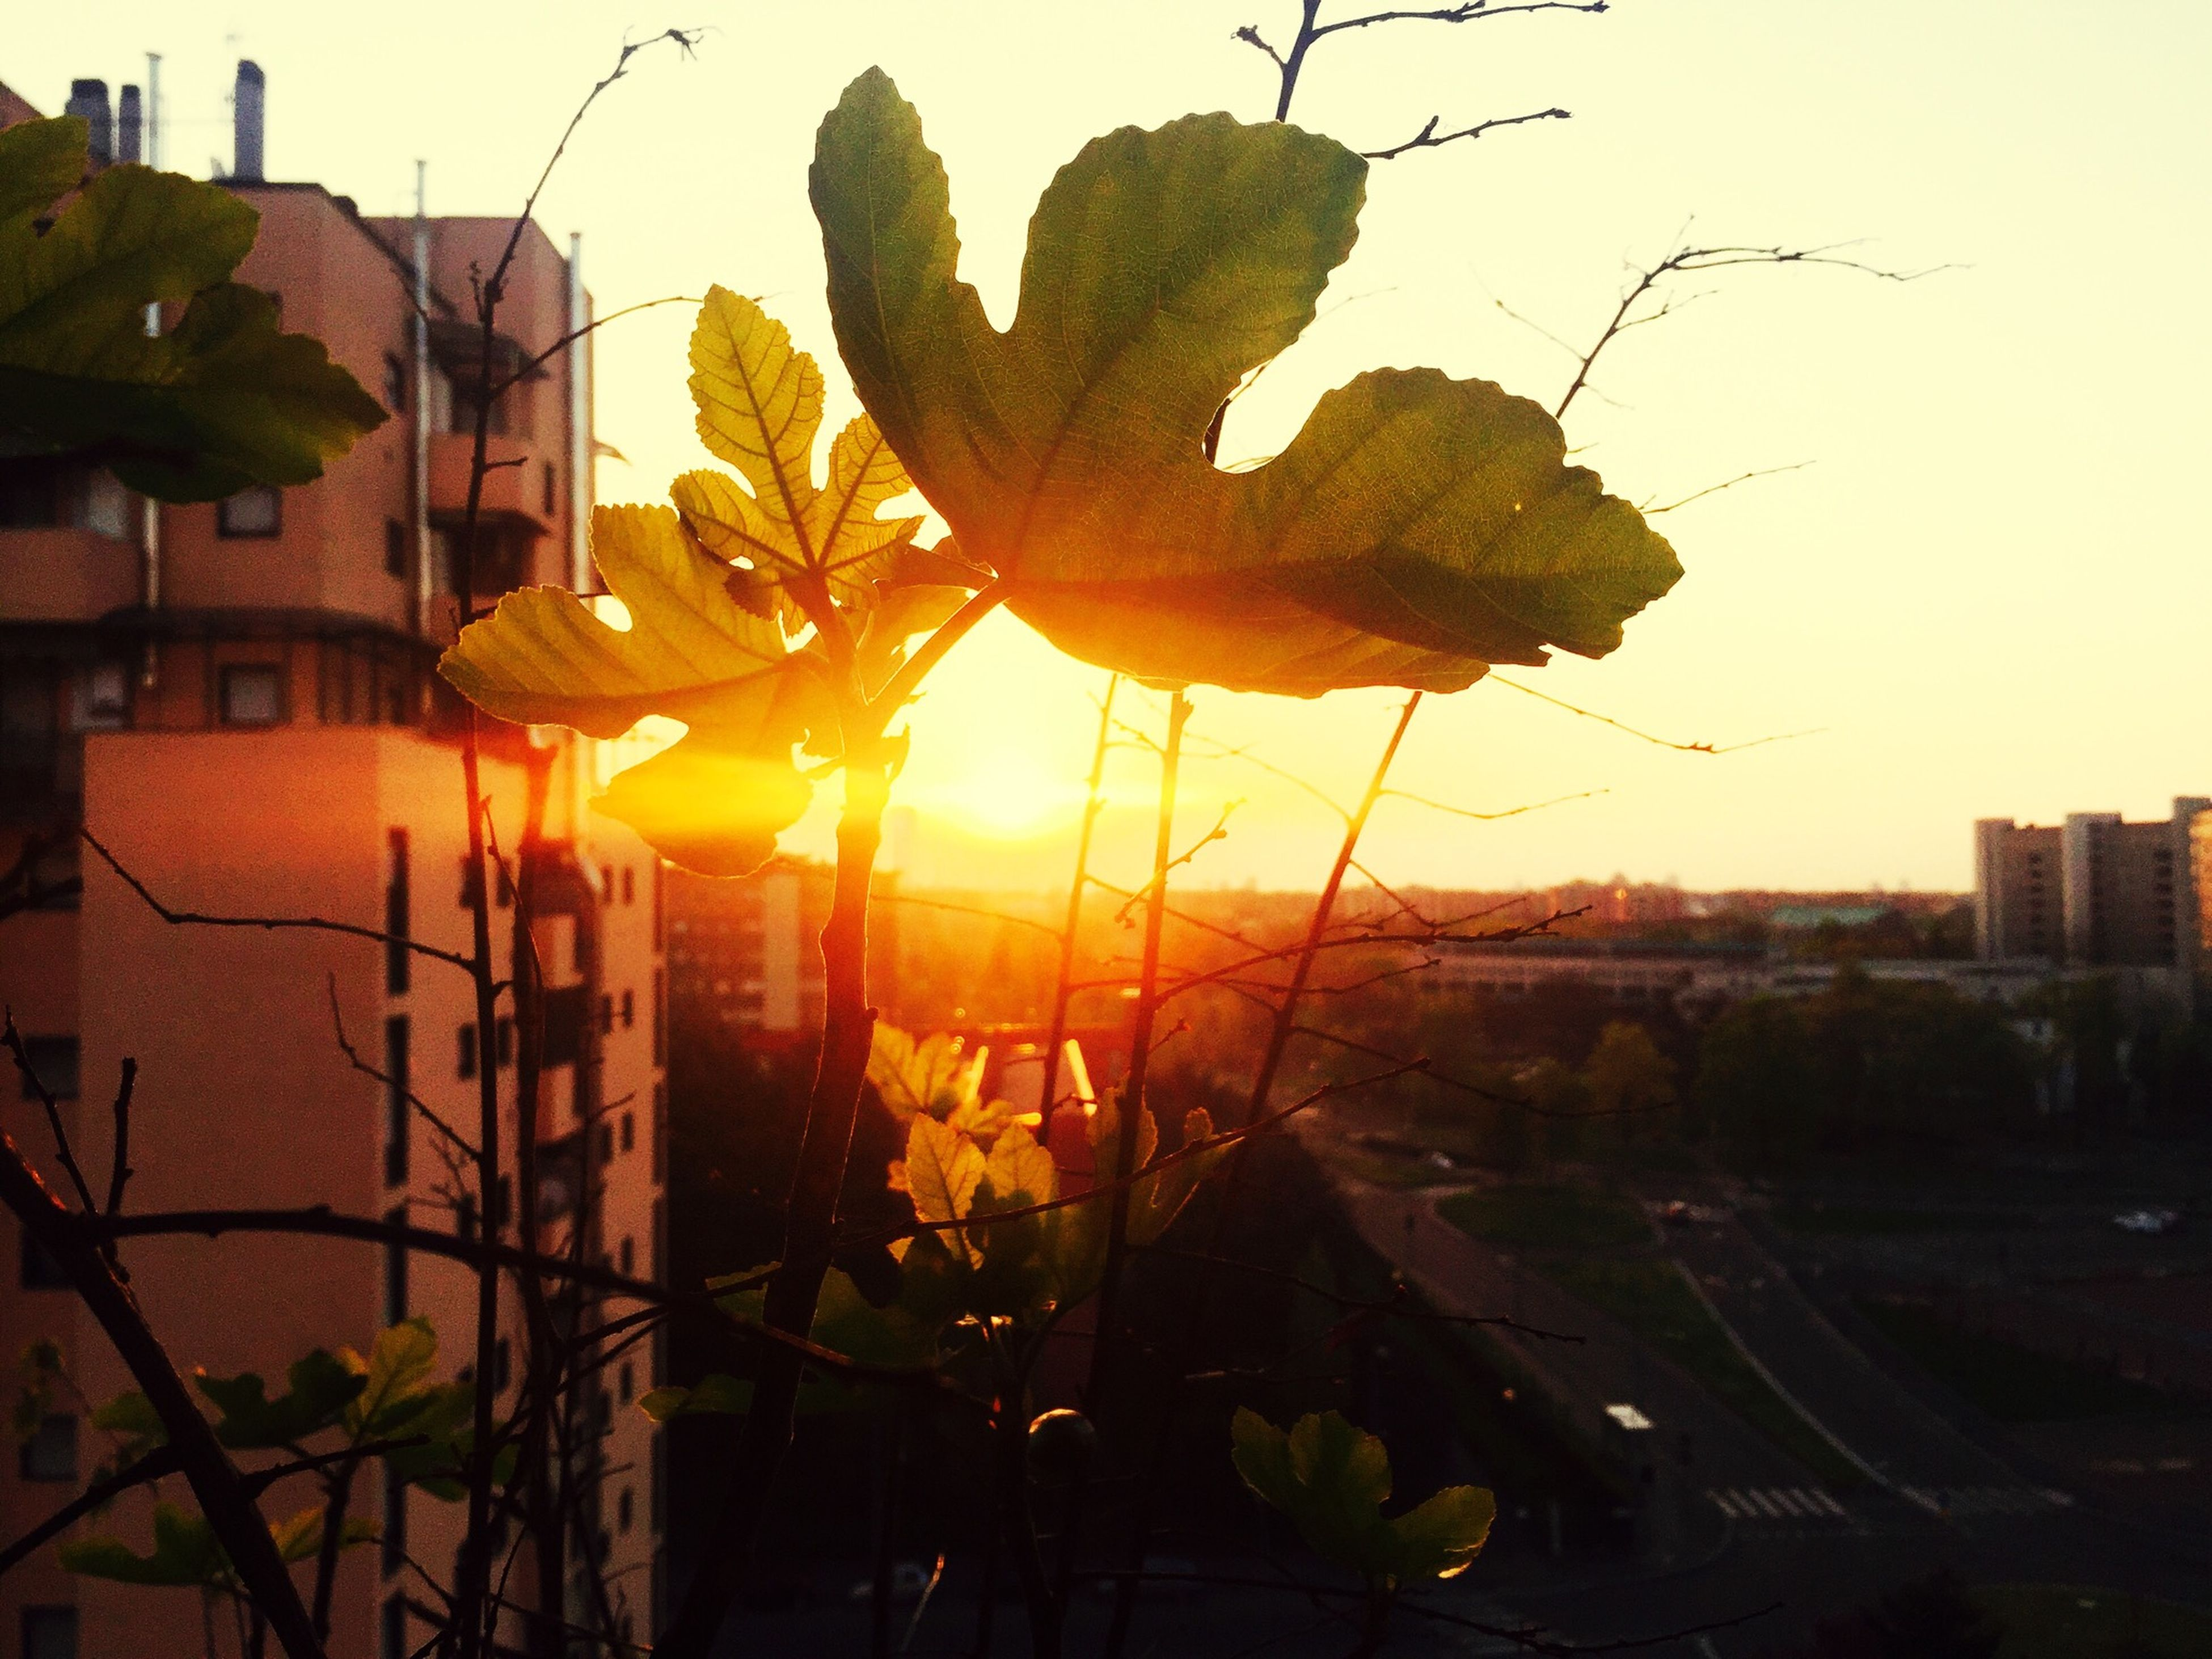 flower, architecture, built structure, sun, building exterior, growth, sunlight, plant, sky, fragility, sunset, nature, sunbeam, clear sky, no people, freshness, tree, close-up, outdoors, beauty in nature